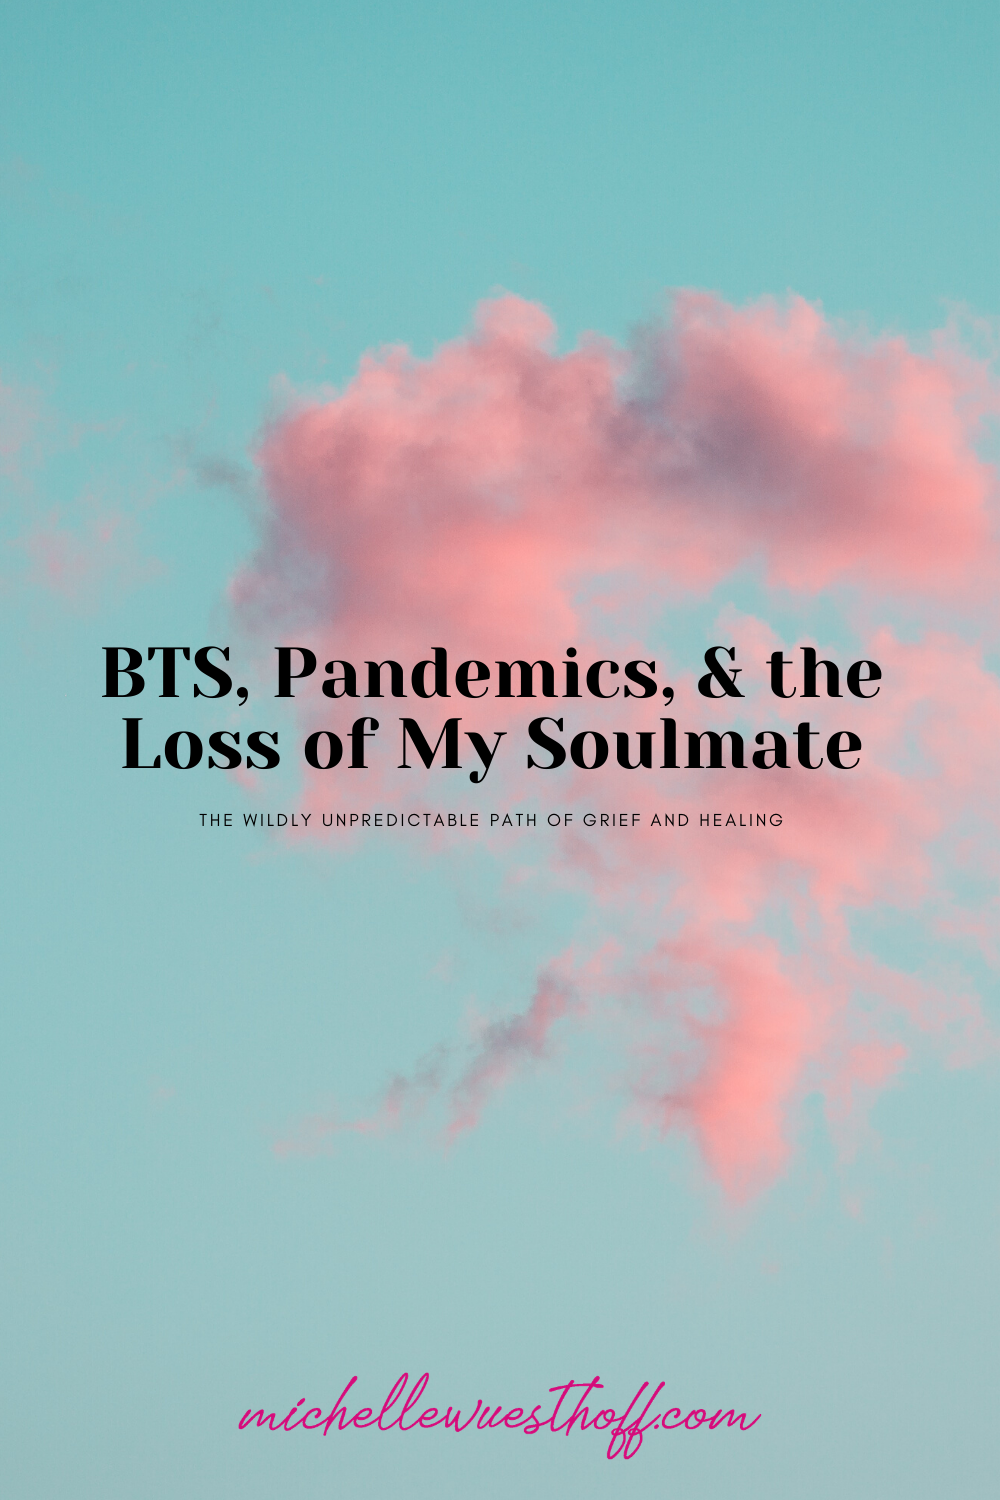 BTS, Pandemics, & the Loss of My Soulmate